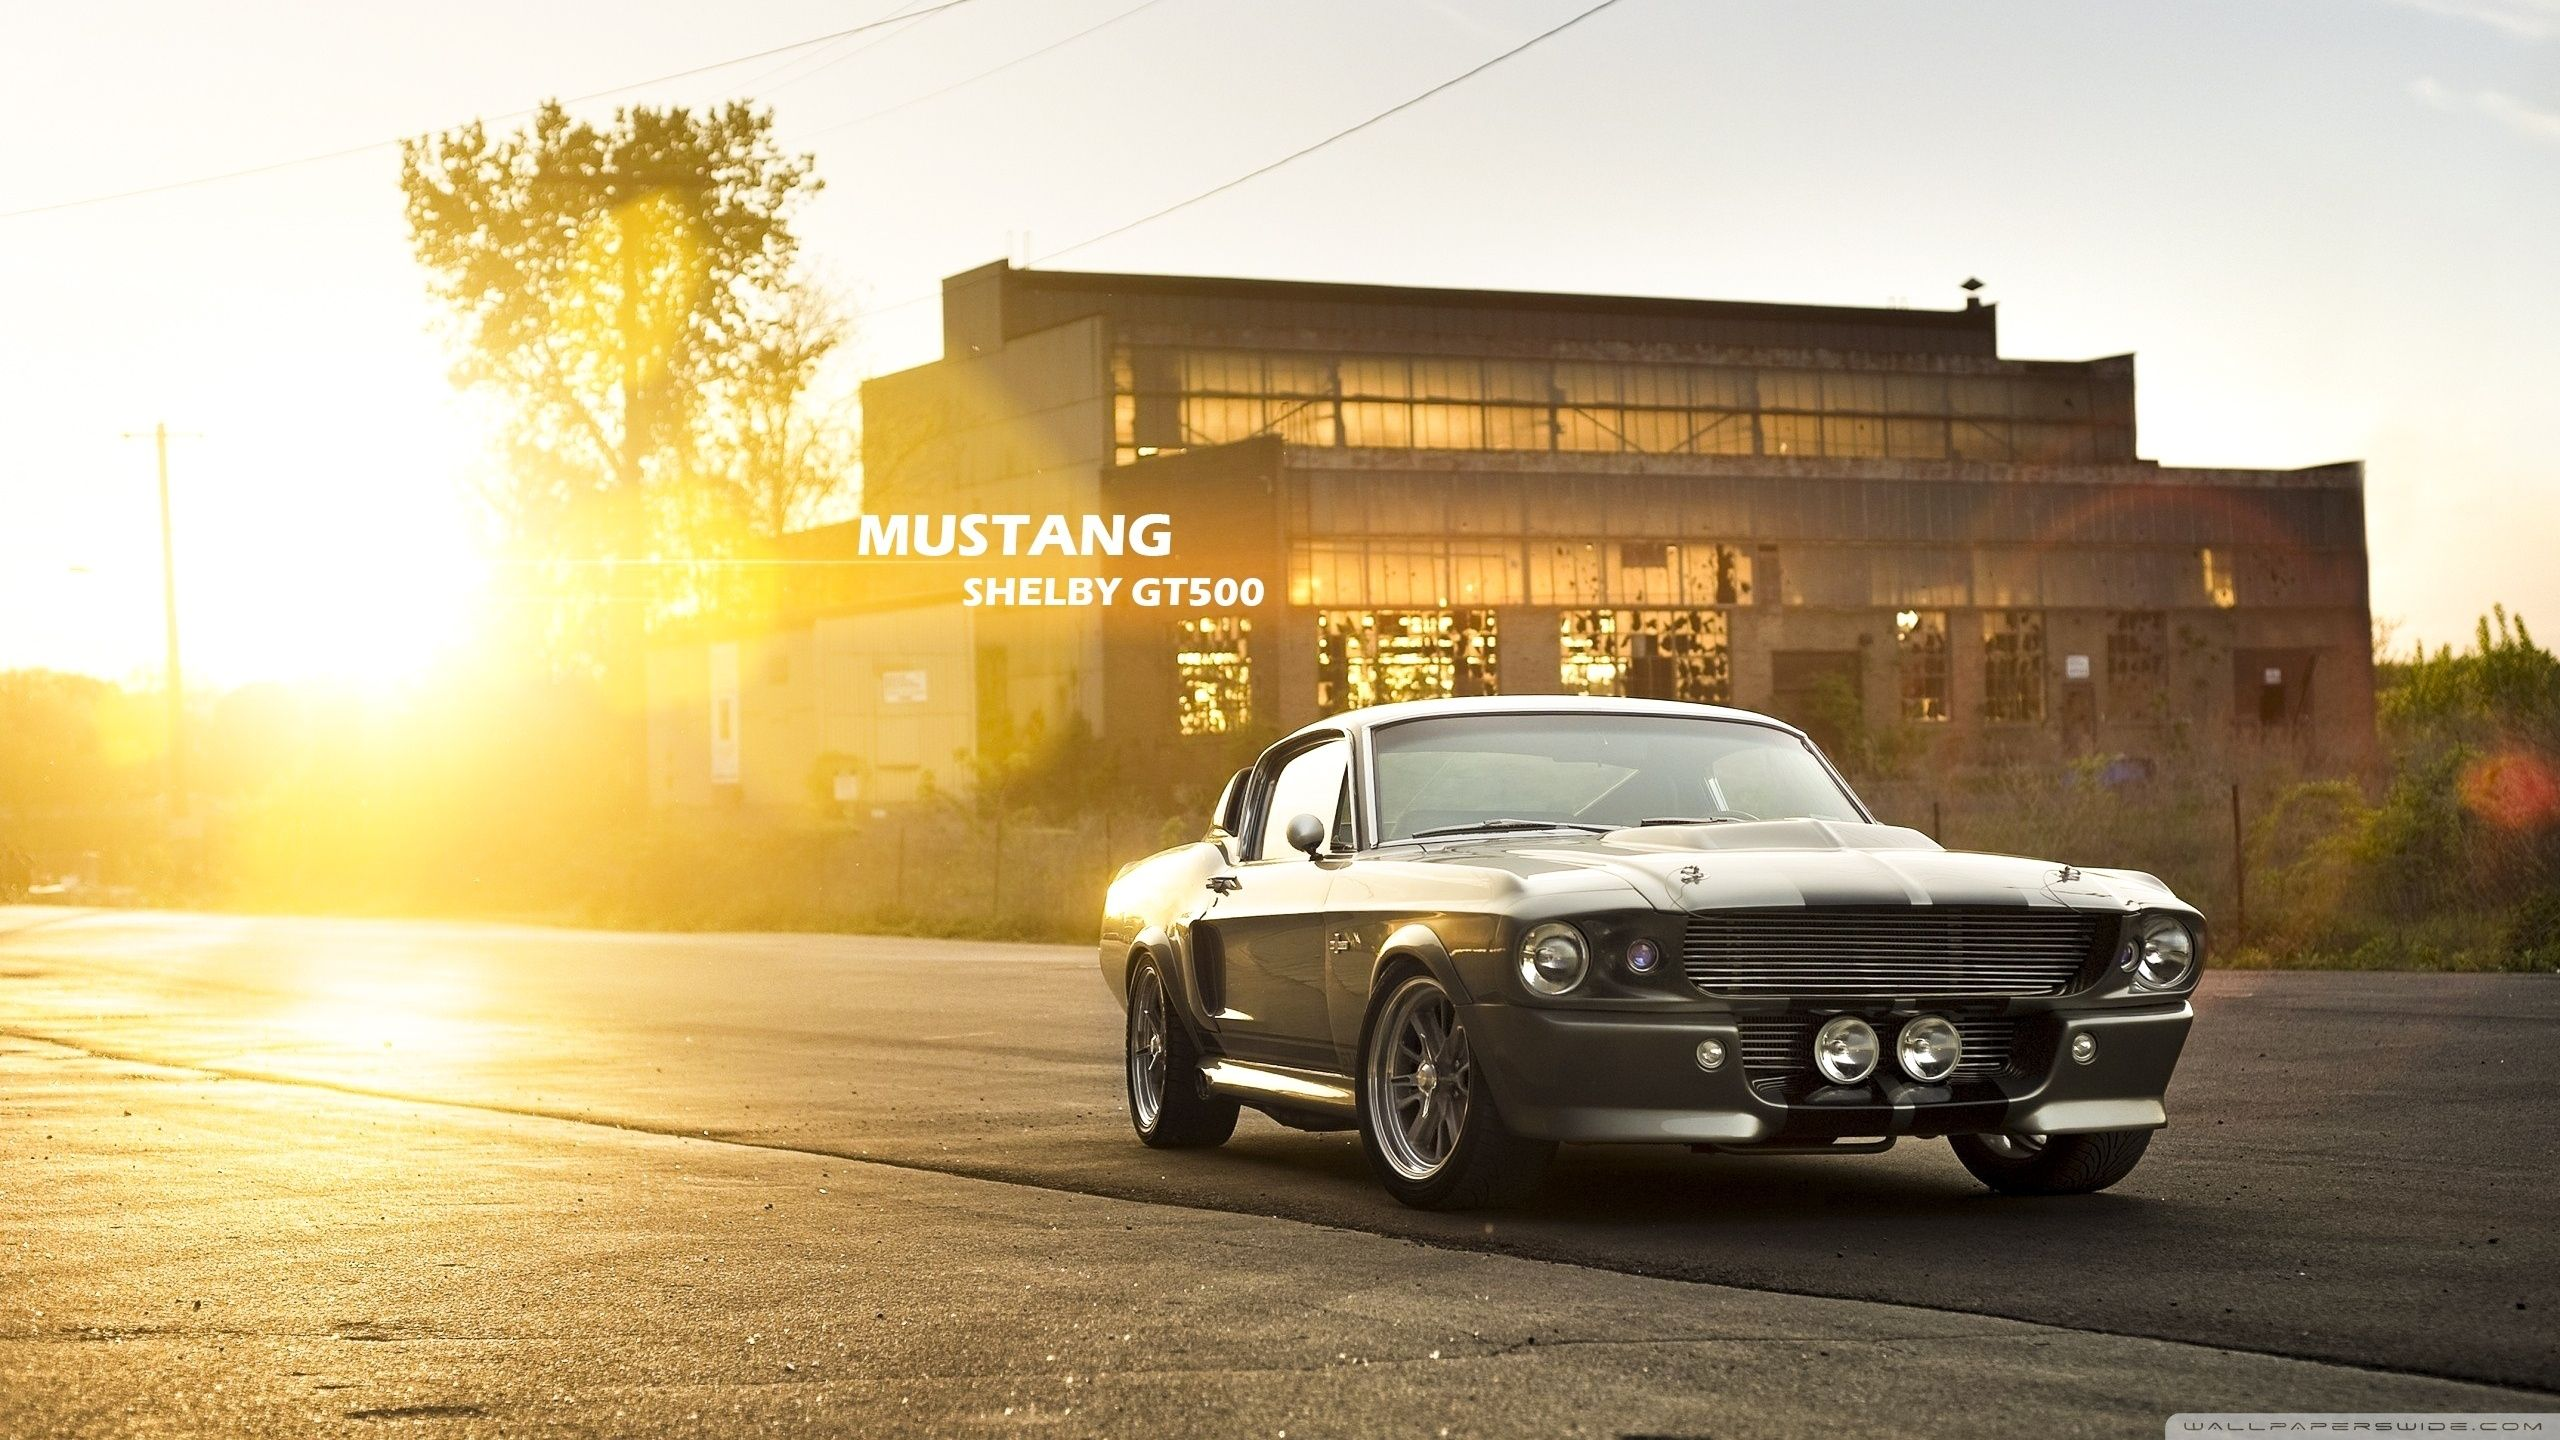 10 Most Popular Classic Cars Desktop Wallpaper Full Hd 1920 1080 For Pc Background Car Wallpapers Classic Cars Mustang Wallpaper